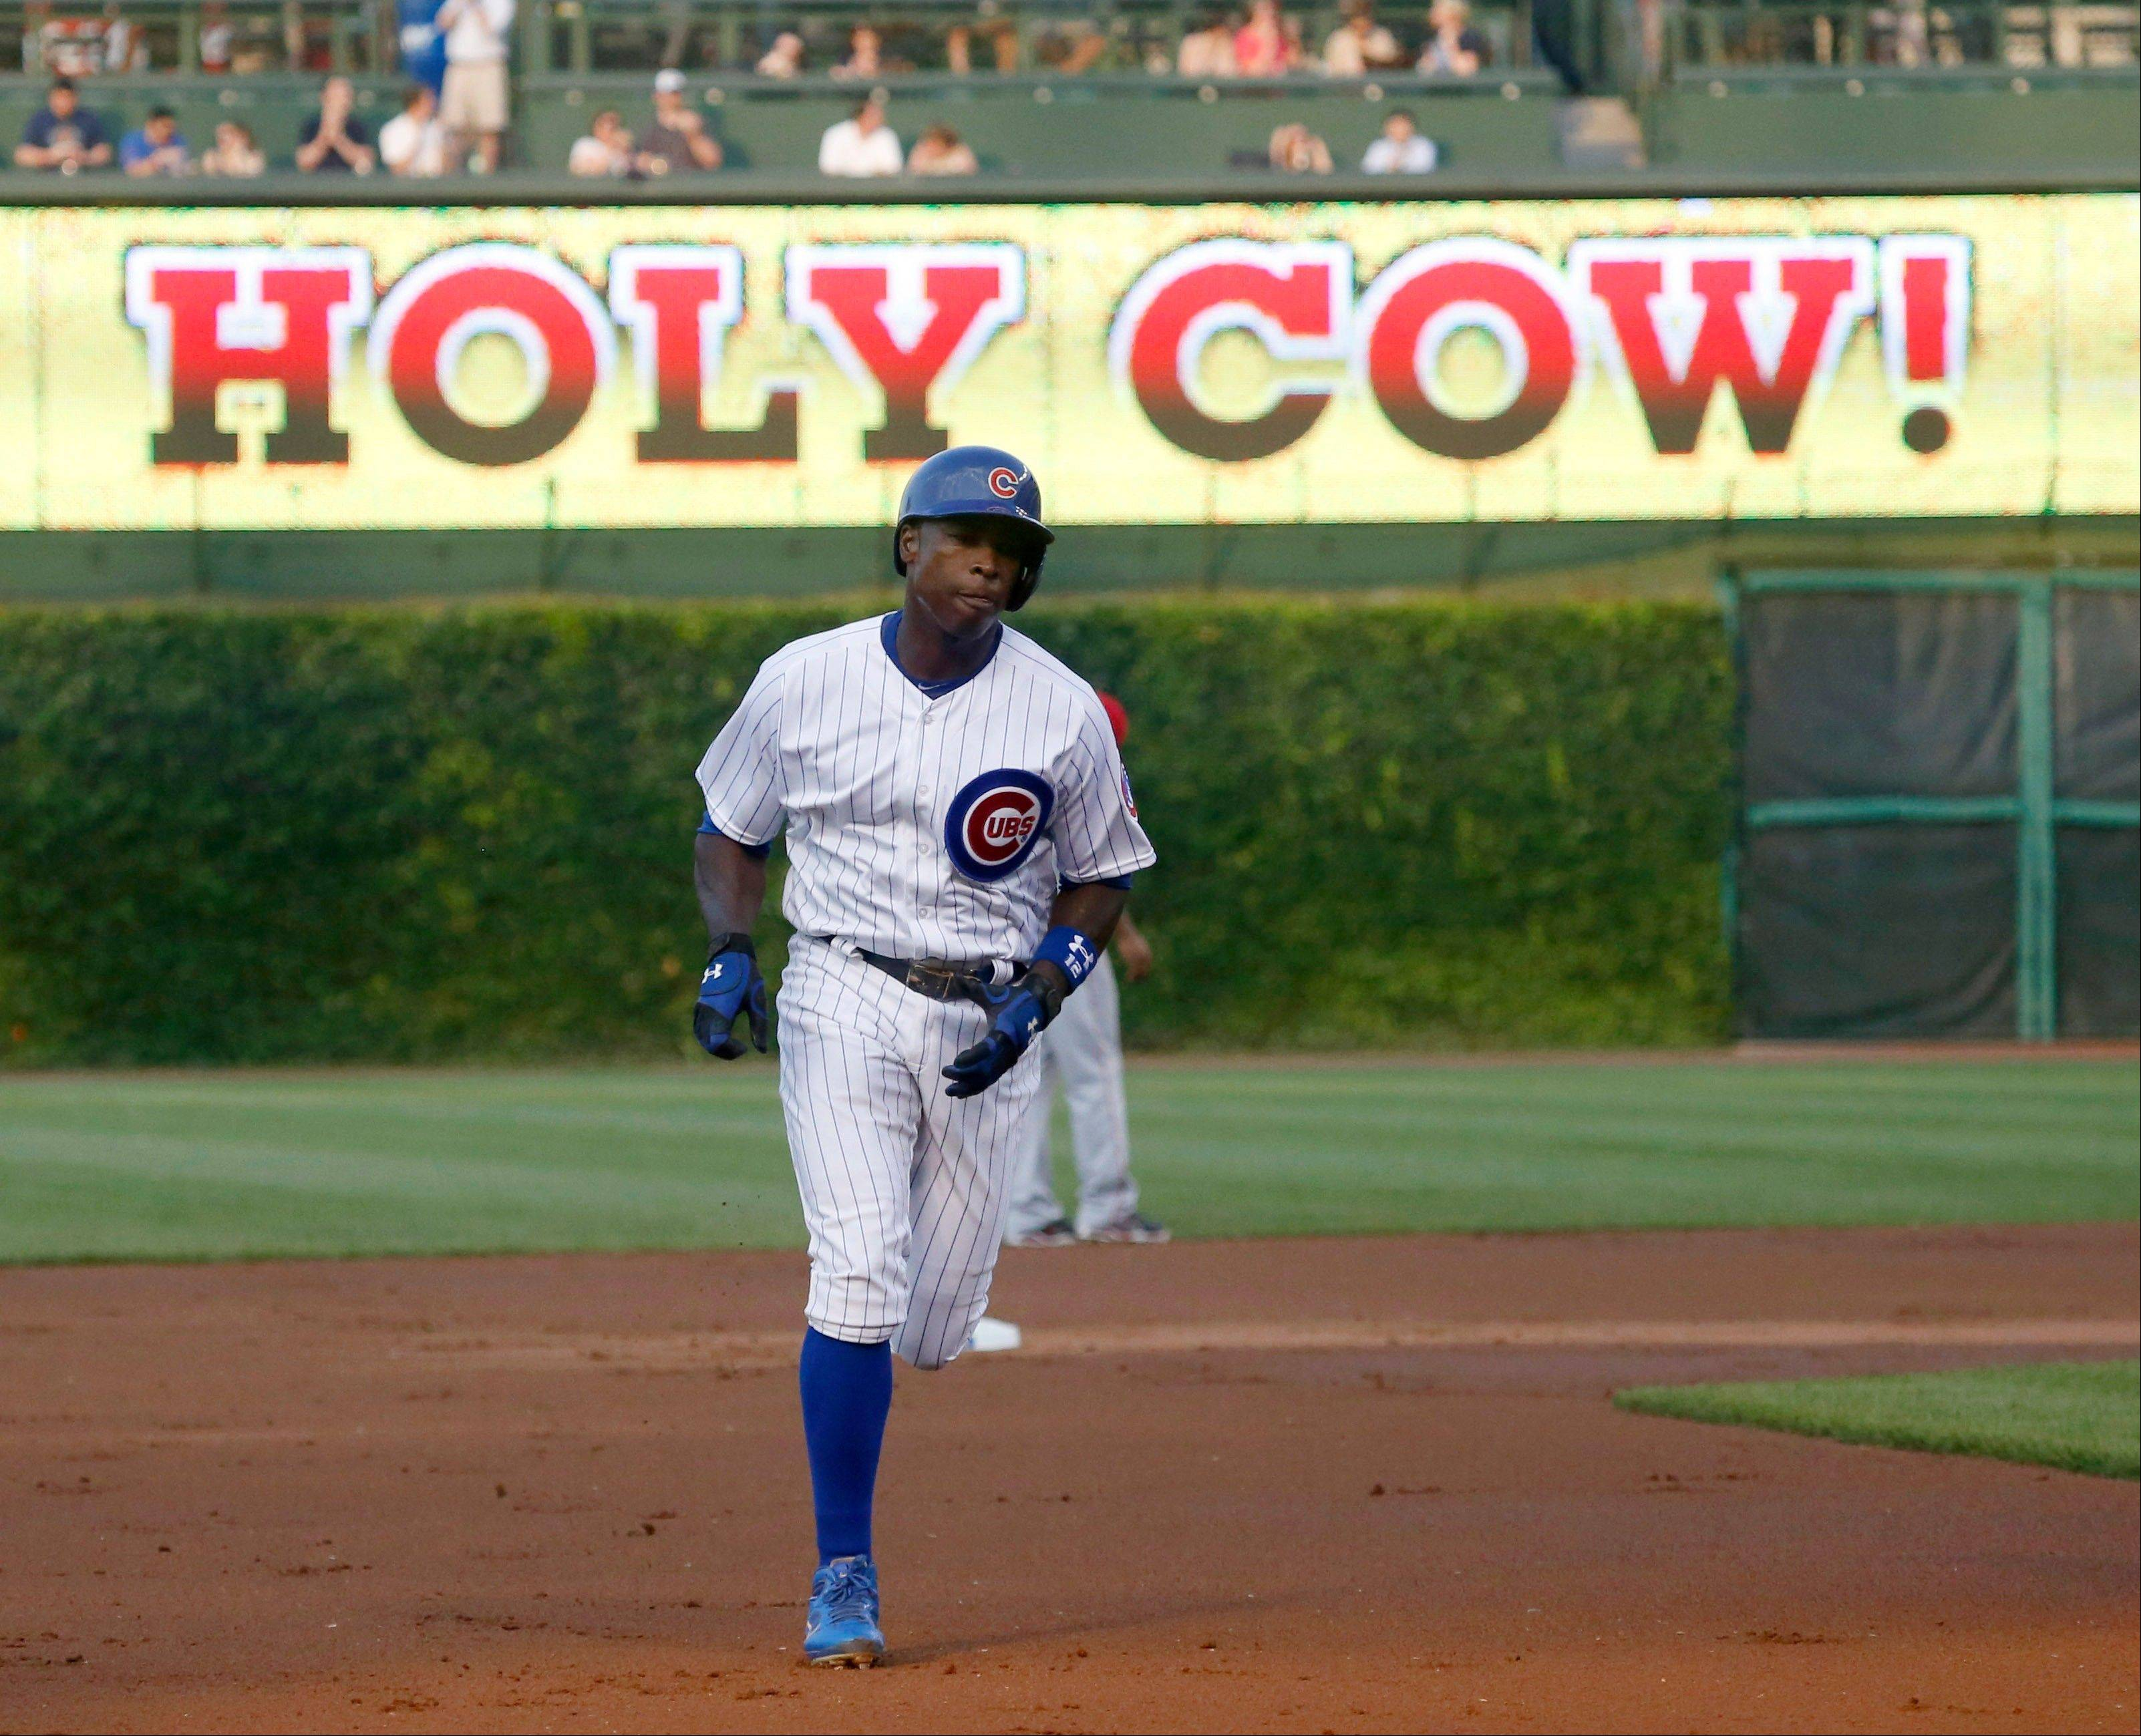 The Cubs� Alfonso Soriano rounds the bases after hitting his first of 2 home runs Tuesday night at Wrigley Field.